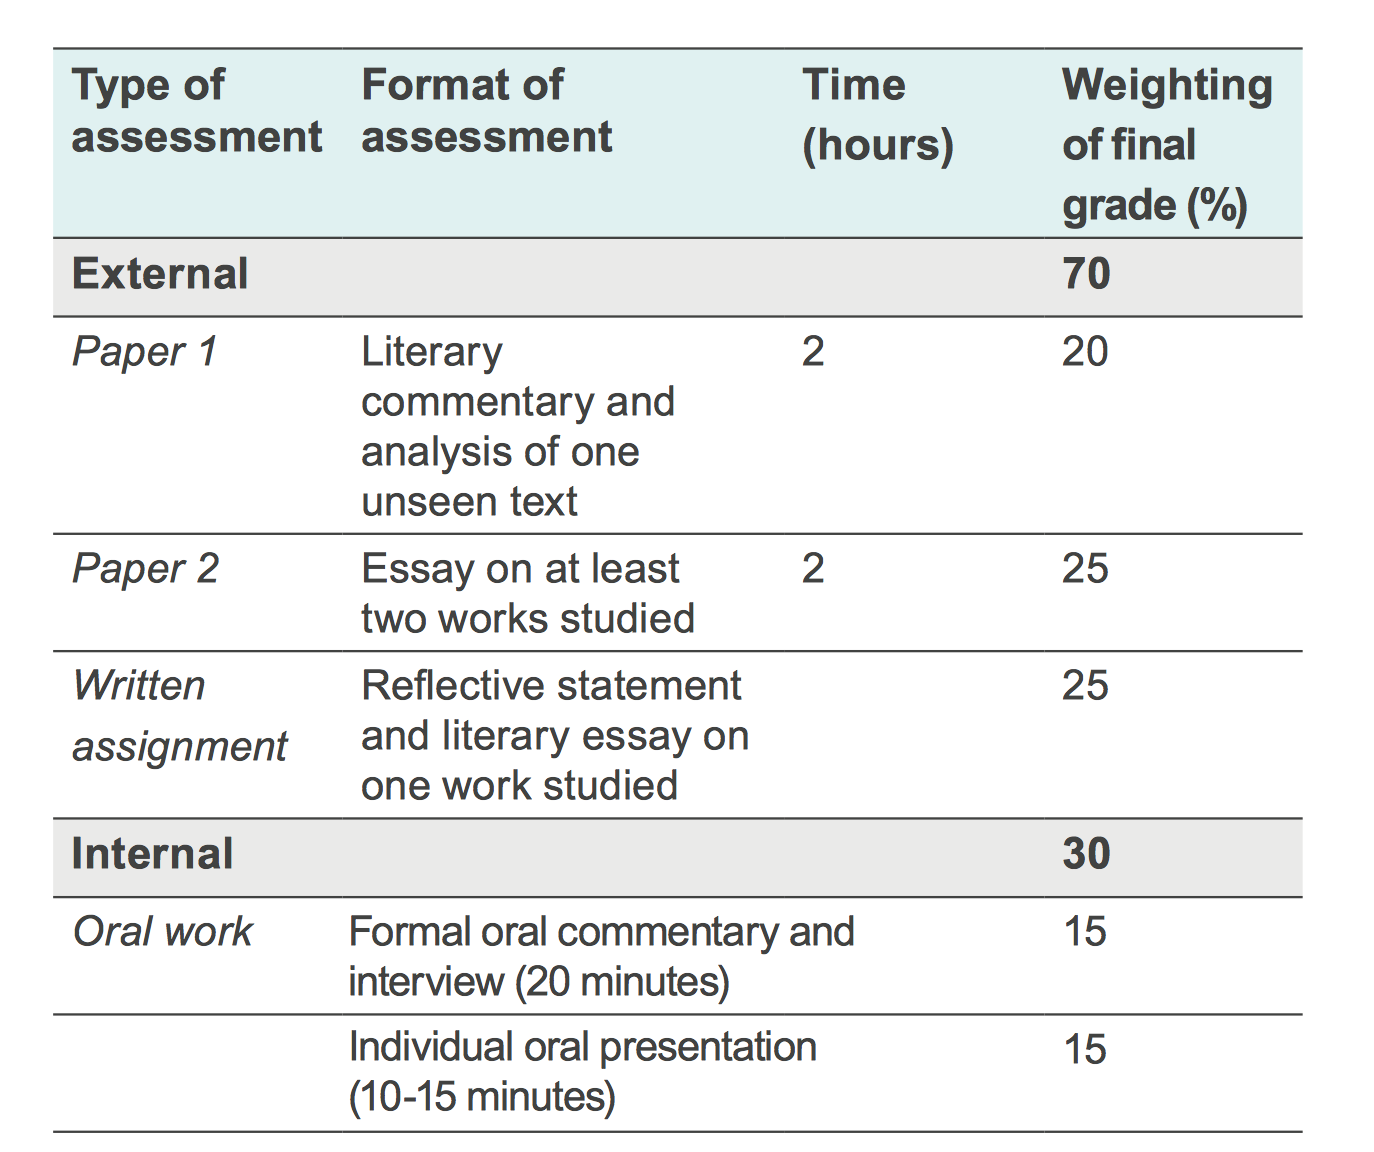 an assessment of the novel a rose for emily by william faulkner A rose for emily summary note: summary text provided by external source author: faulkner, william and complementary technologies that link assessment results.